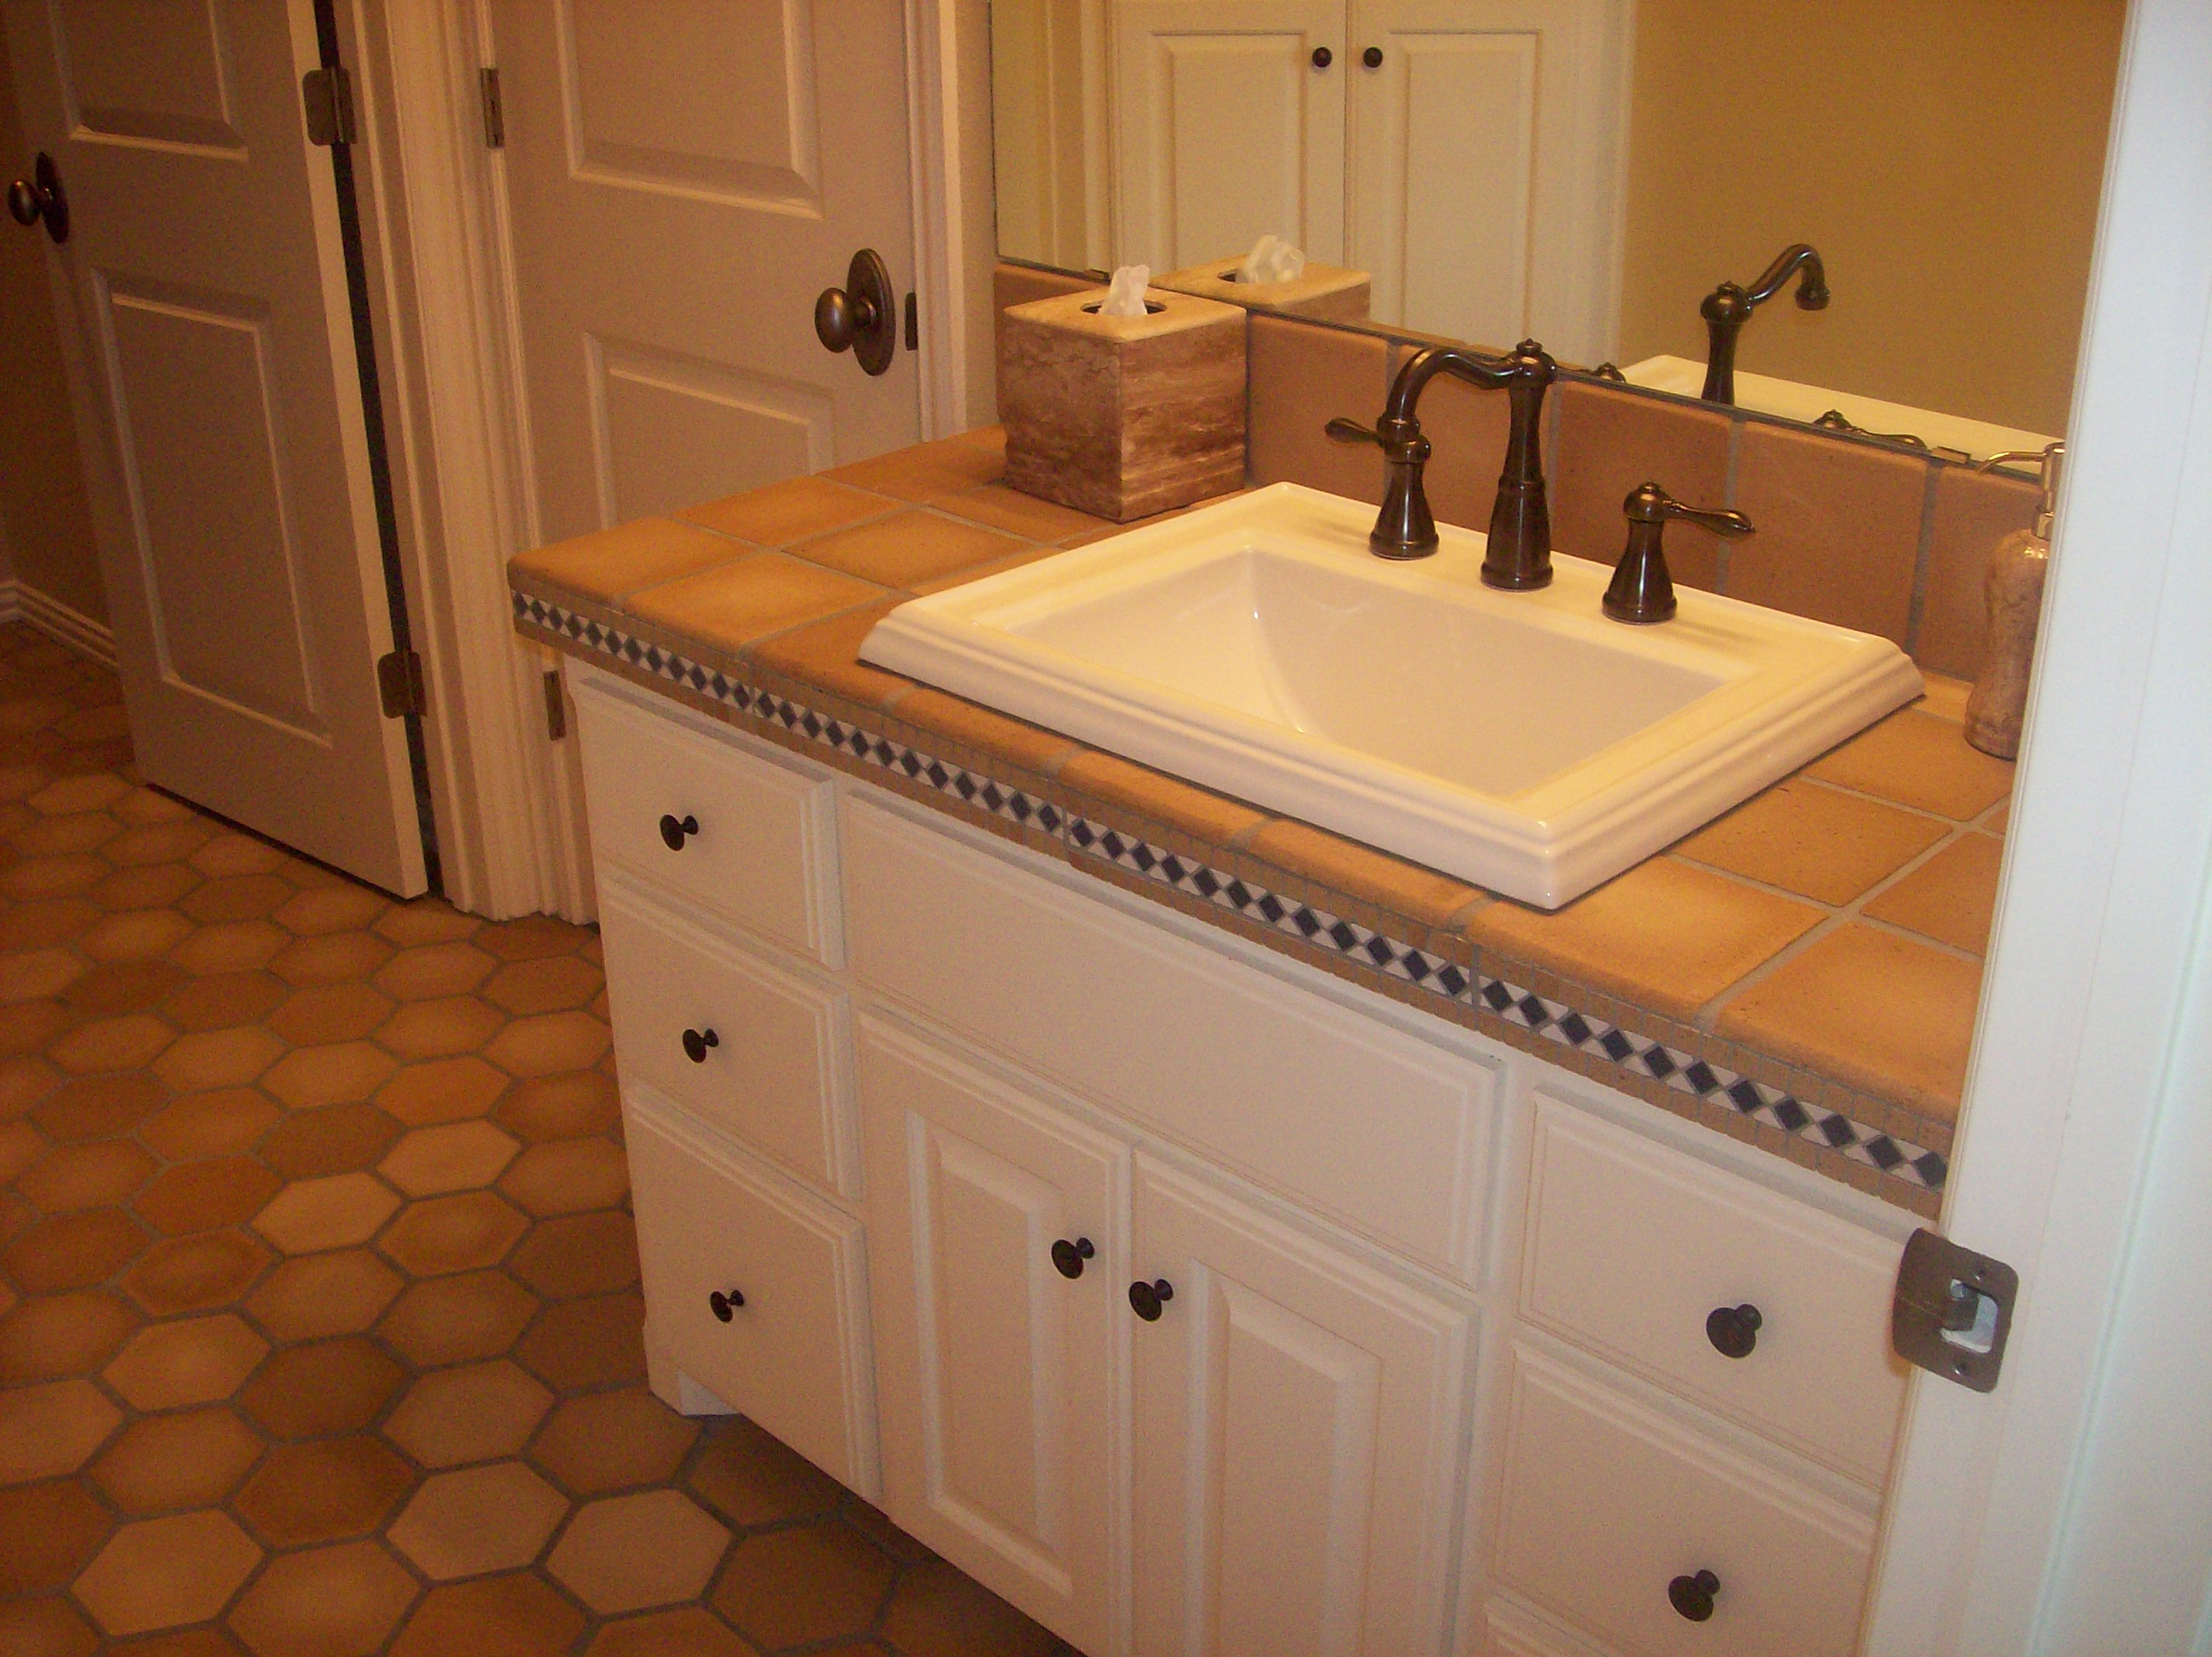 Bathroom Remodeling In Fort Worth Texas With Robinson Builders